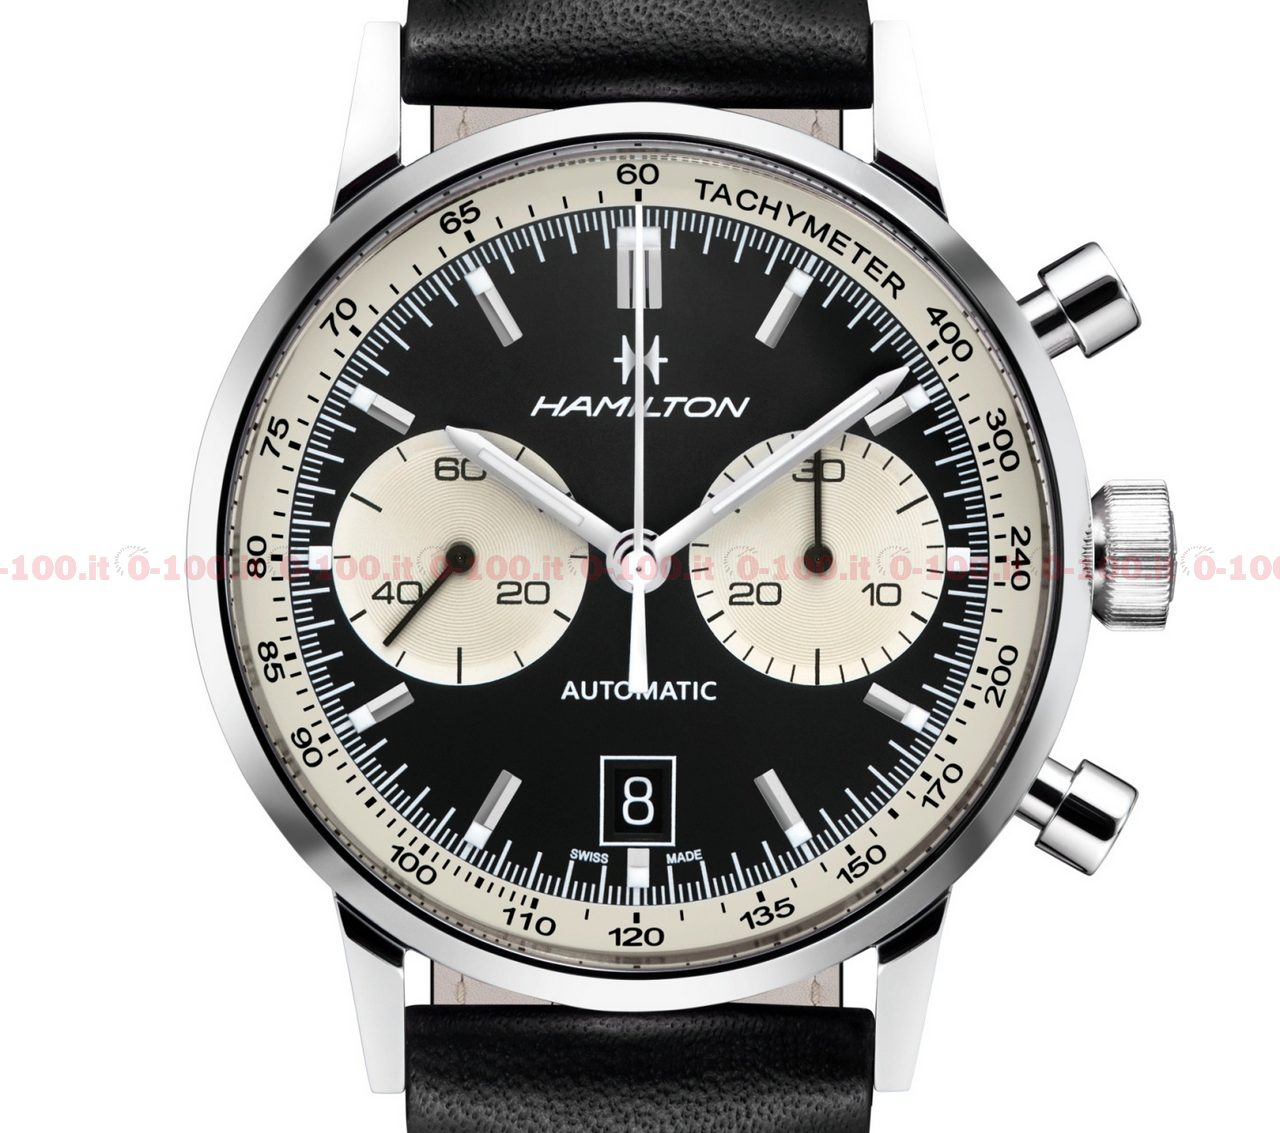 anteprima-baselworld-2017-hamilton-intra-matic-68-limited-edition-prezzo-price_0-1001